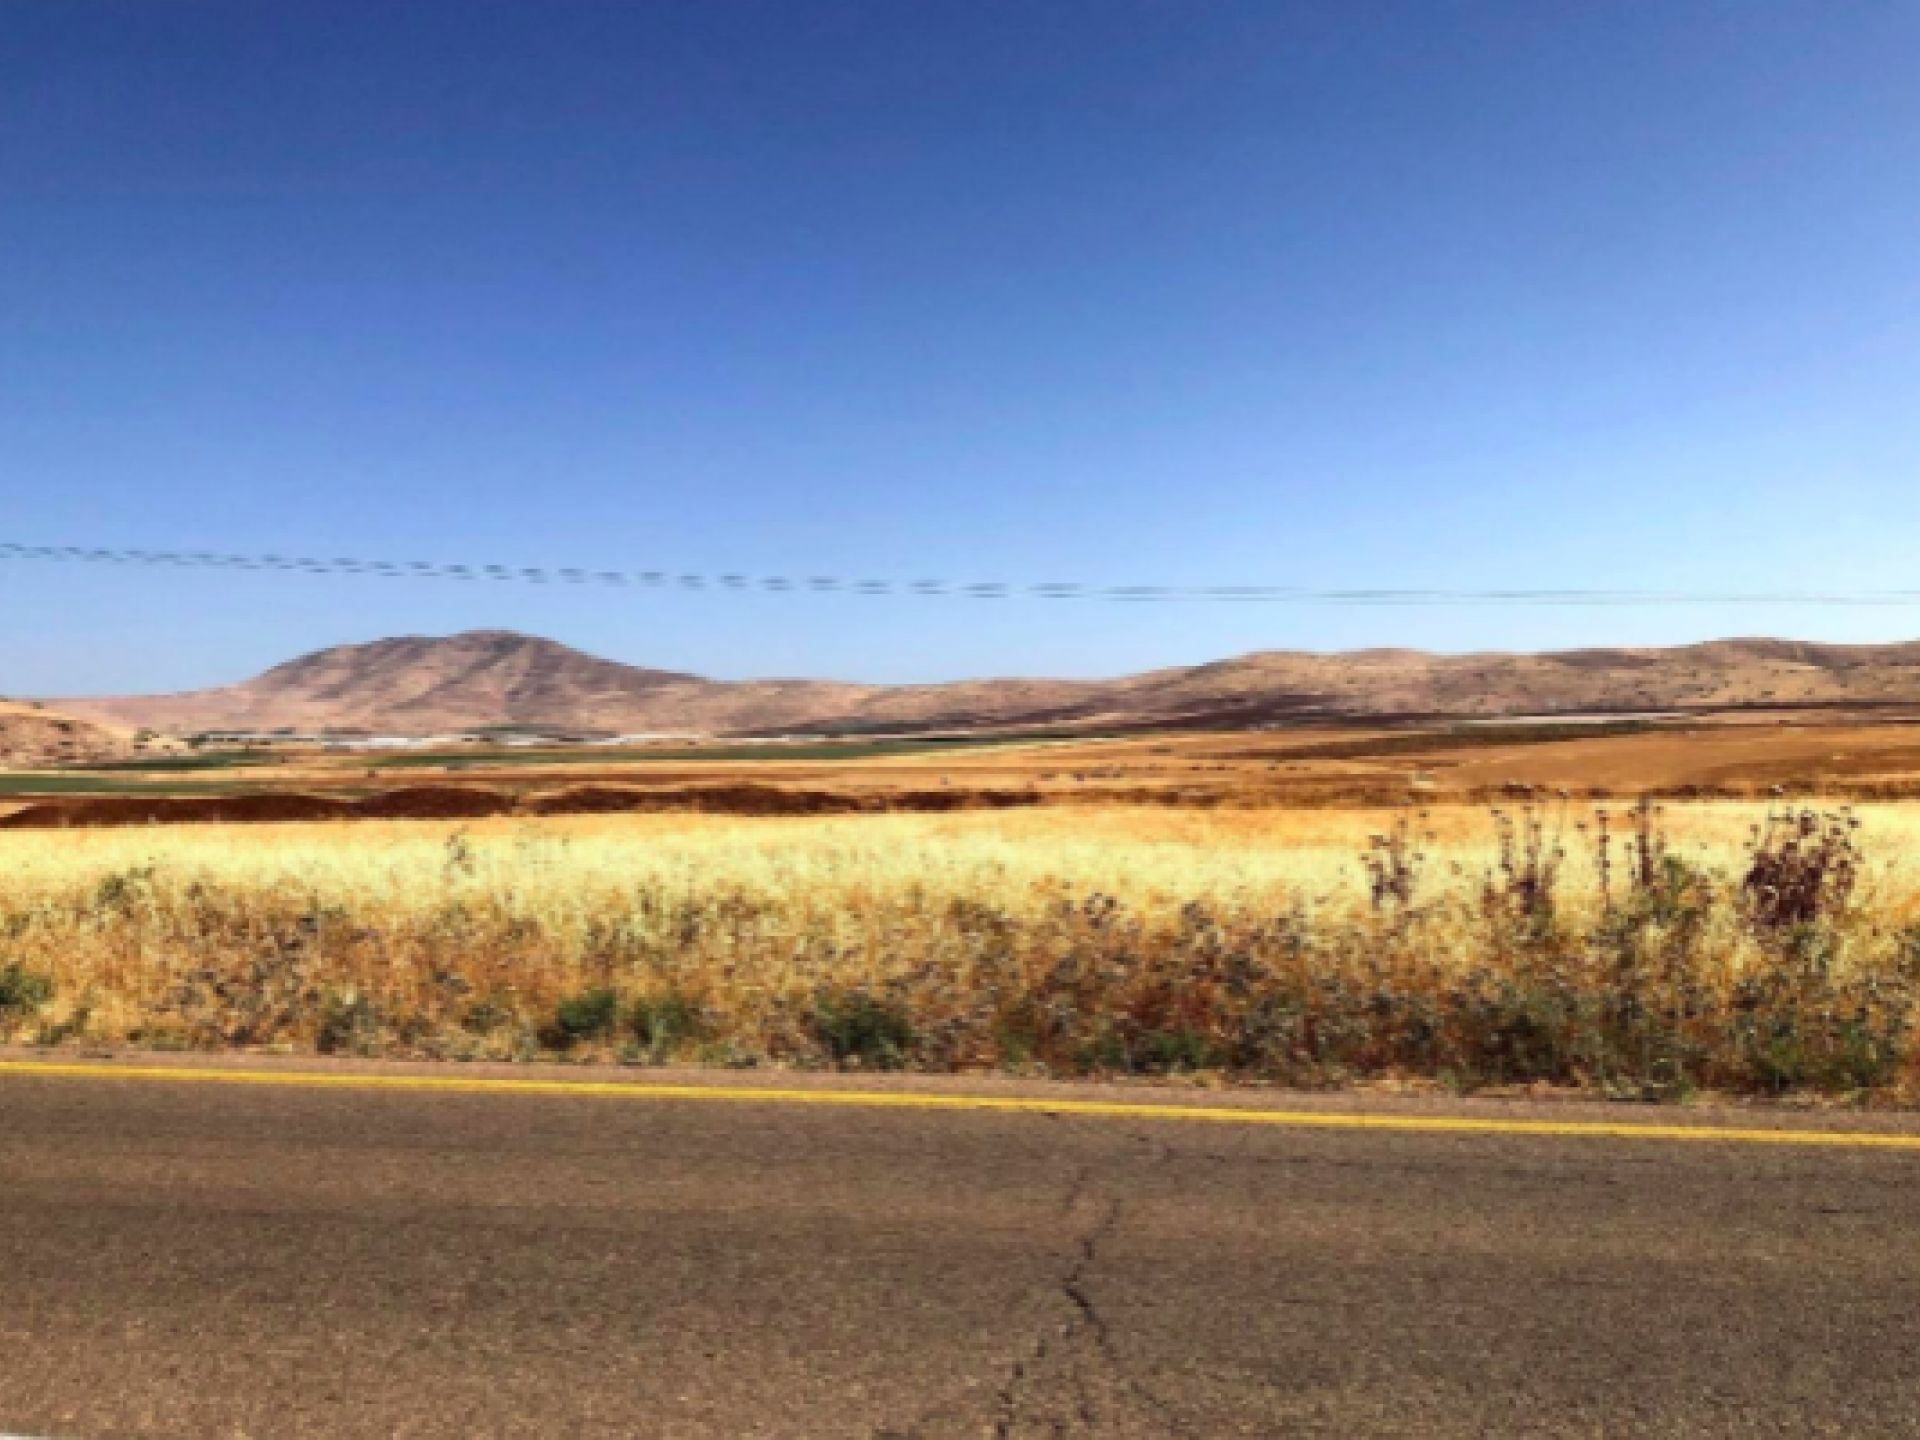 Road with view of hills and yellowed vegetation